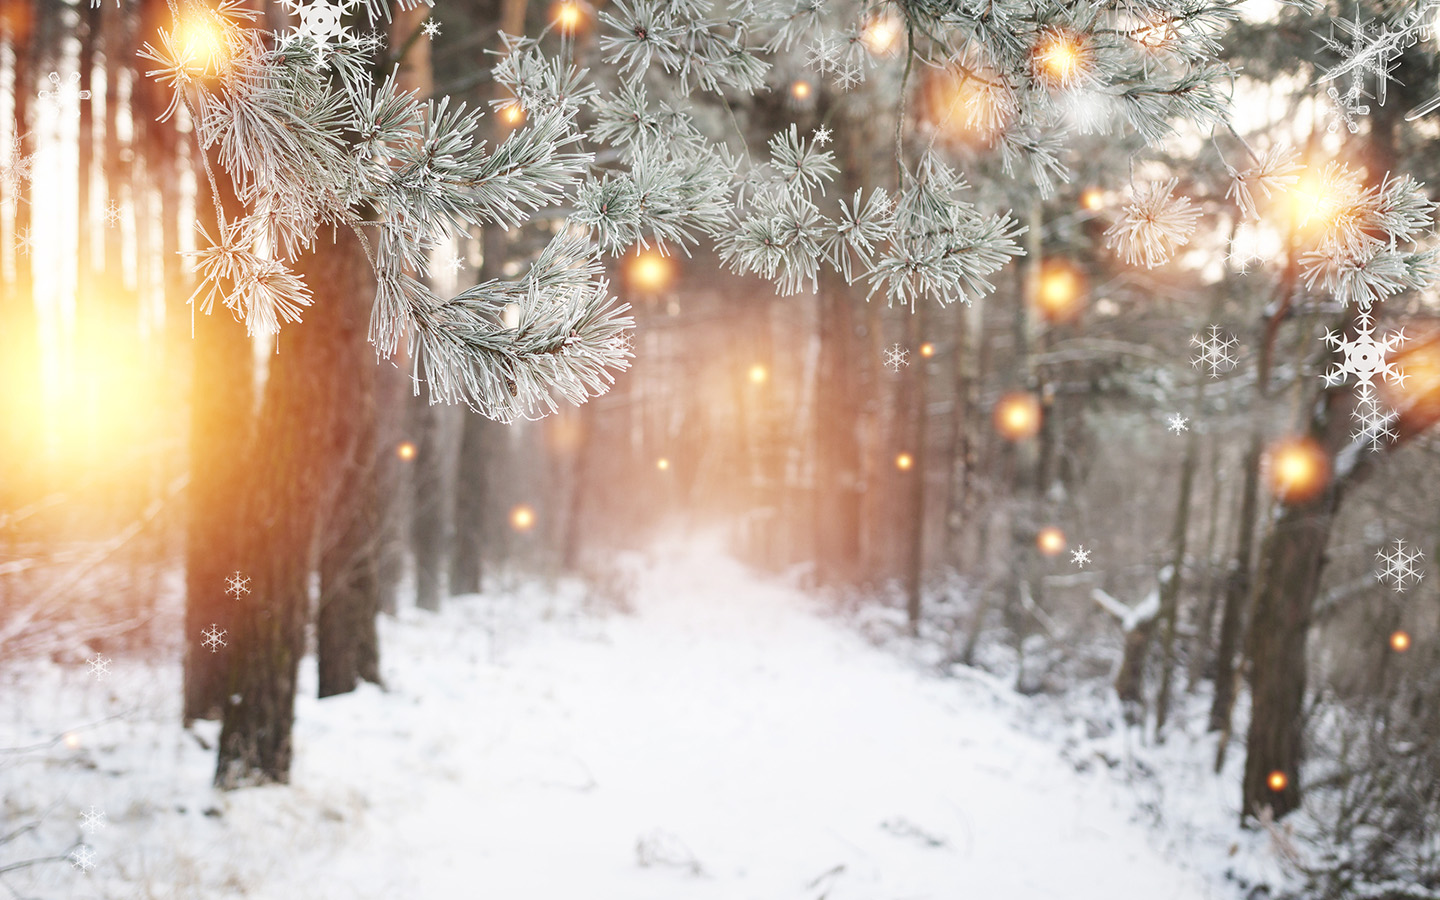 Winter forest with glowing snowflakes